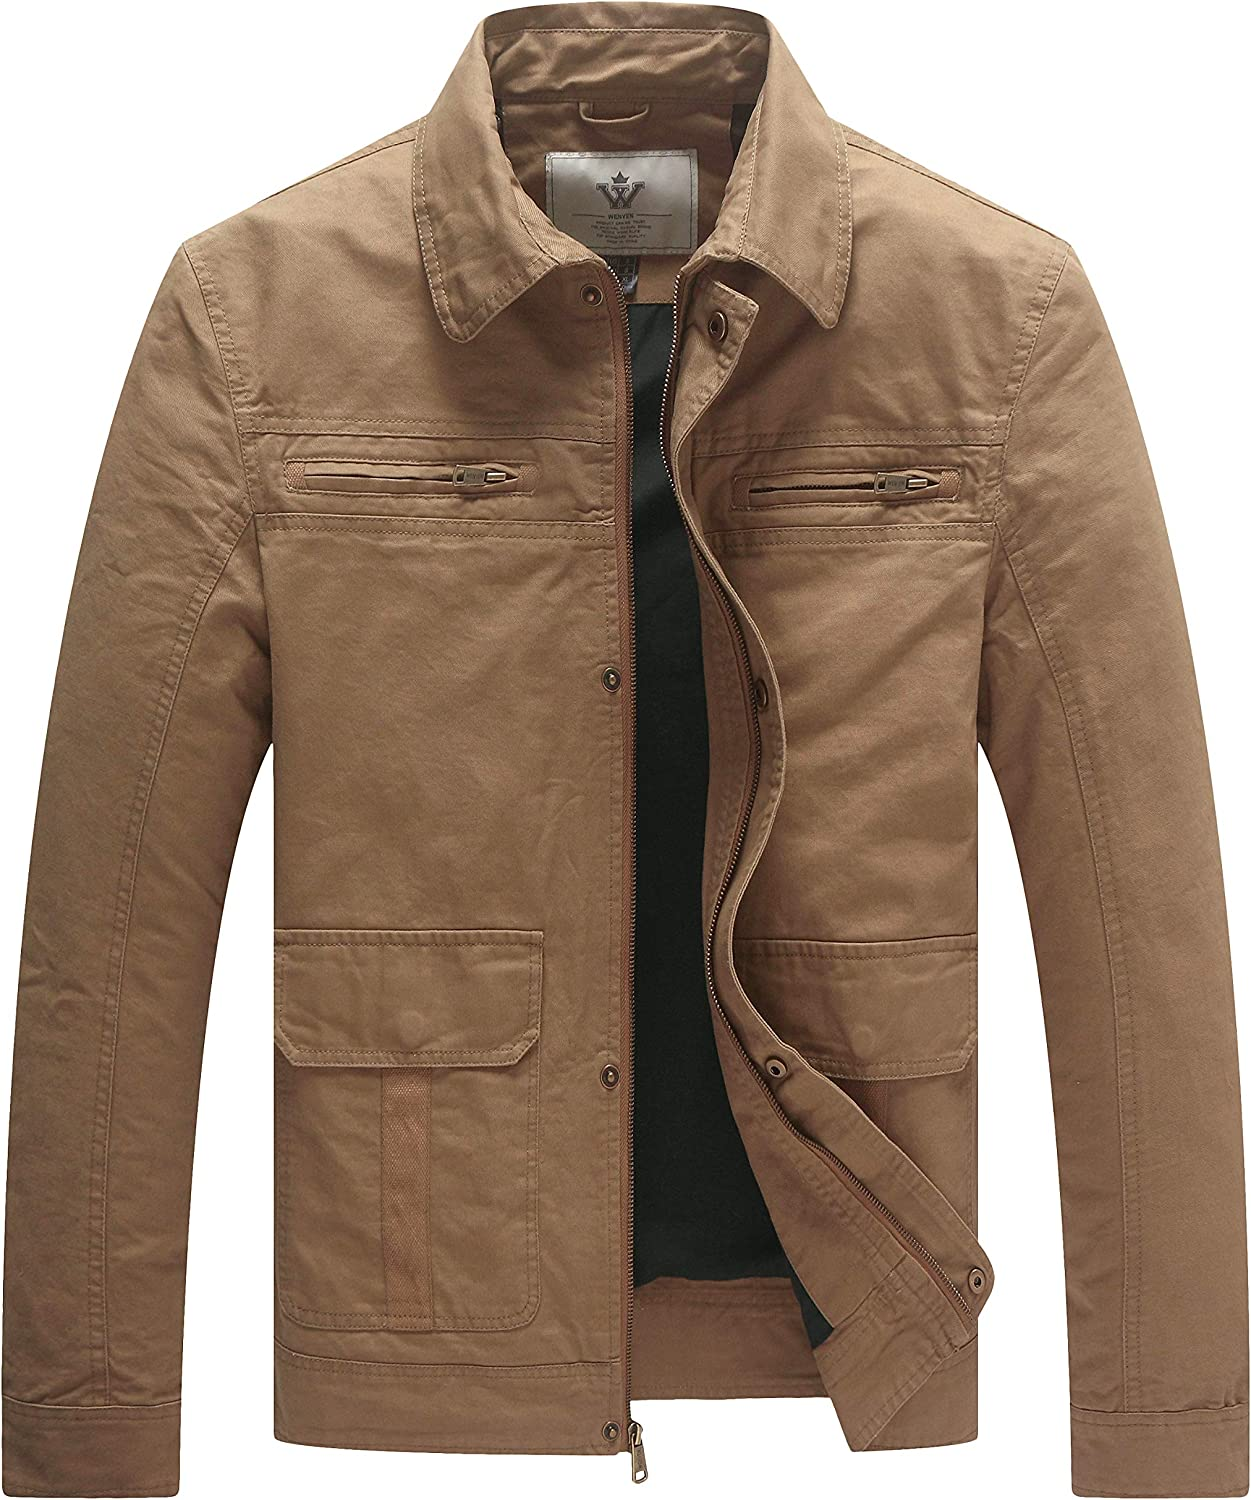 WenVen Men's Very popular Casual Lightweight Canvas Ranking TOP8 Military L Utility Jacket